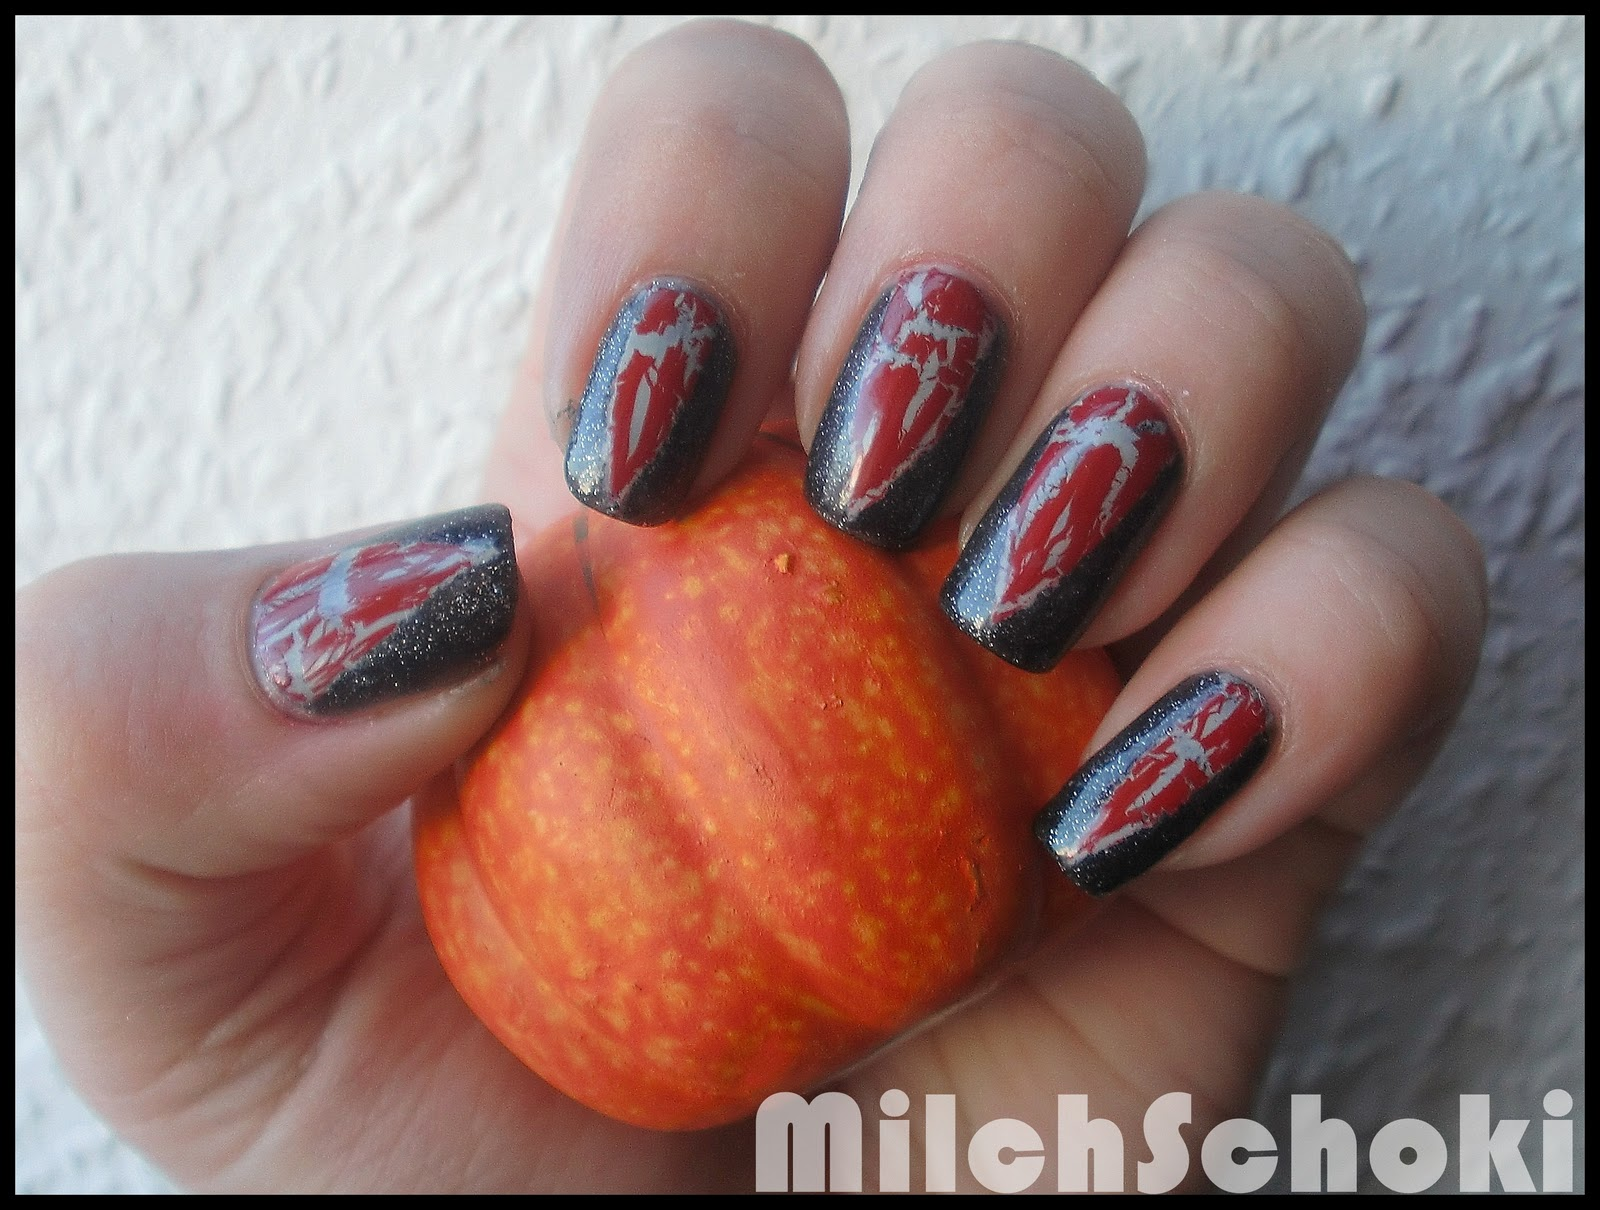 Beautyecke: •○°Halloween 2011 - Nageldesign - Achtung, bissig!°○•